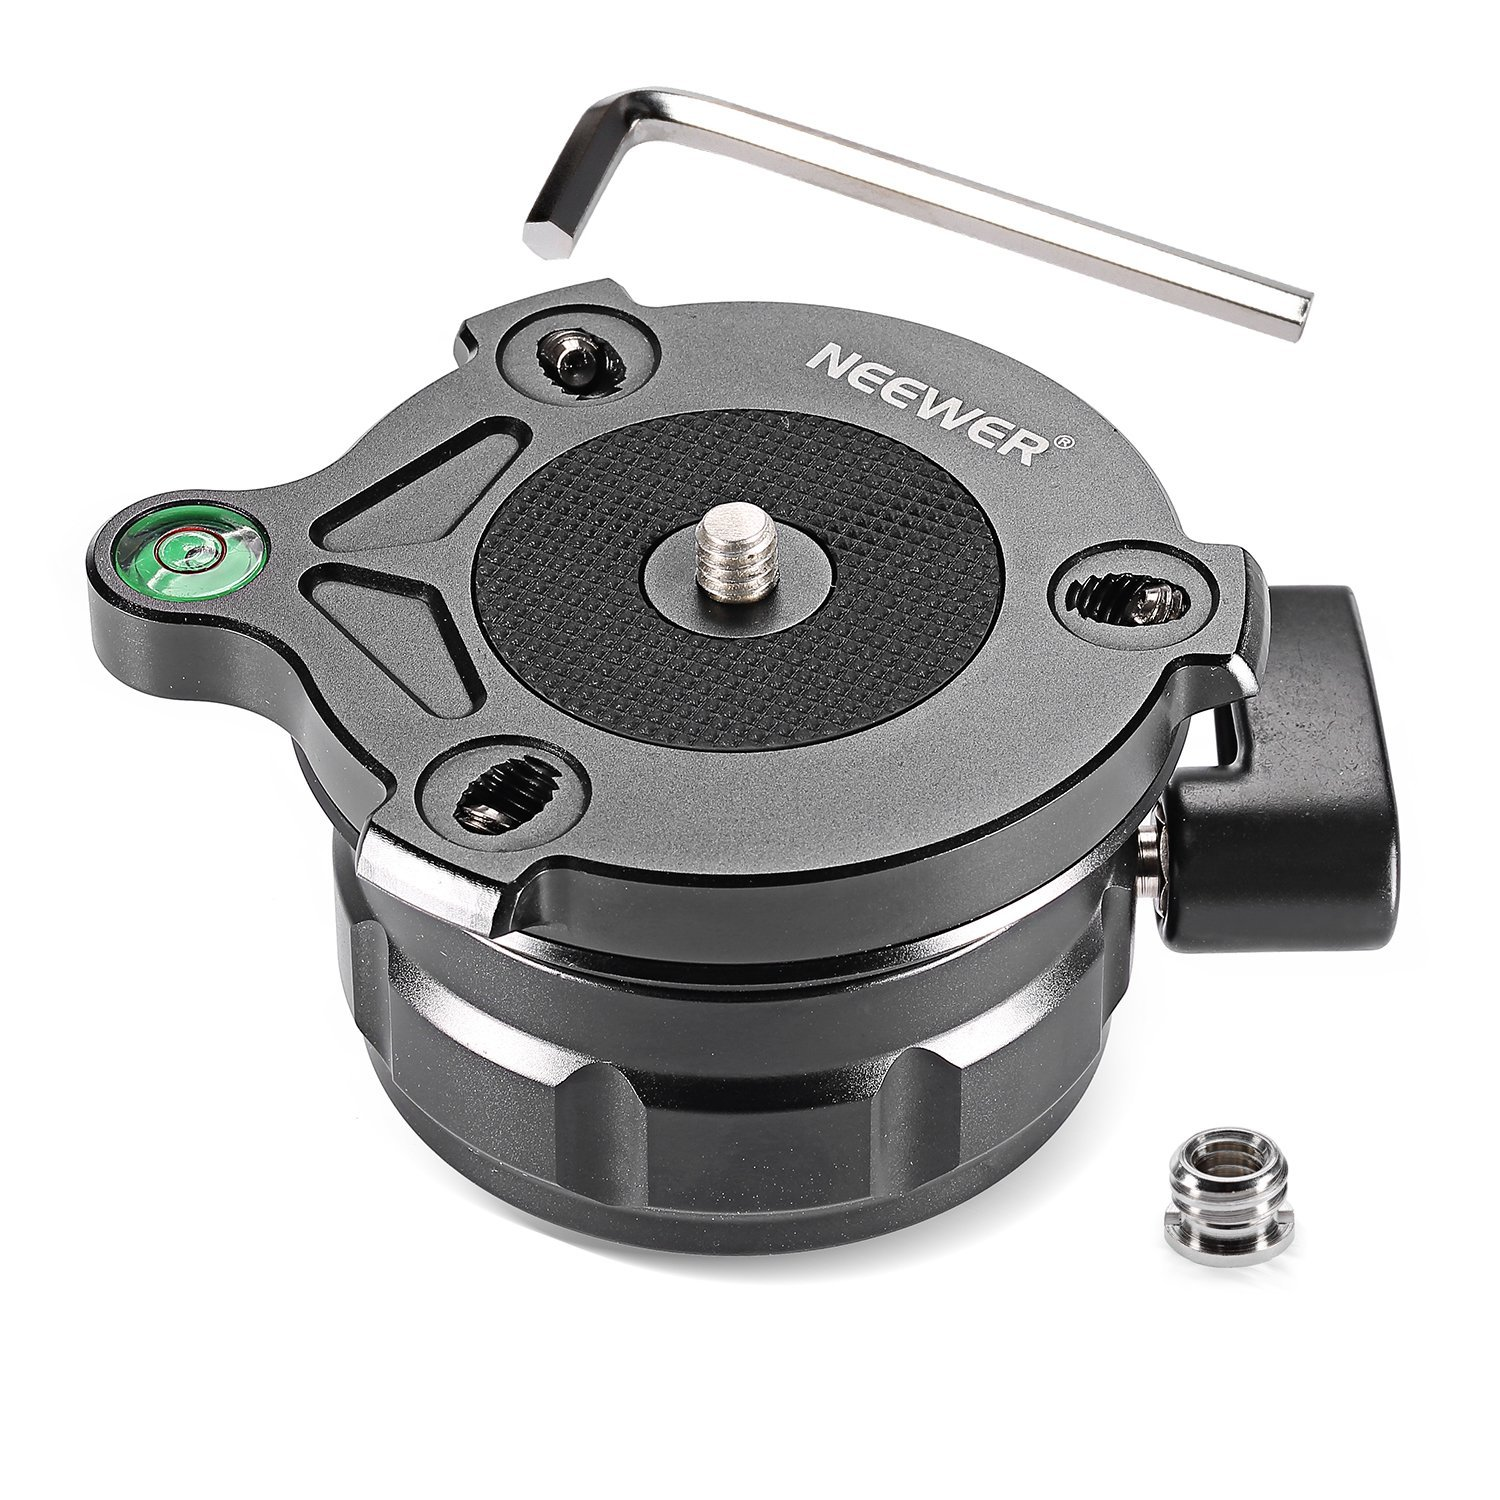 """Neewer Tripod Leveling Base with Offset Bubble Level for Canon,Nikon,and Other DSLR Cameras with 1/4"""" Thread, Tripods & Monopods with 3/8"""" Thread"""